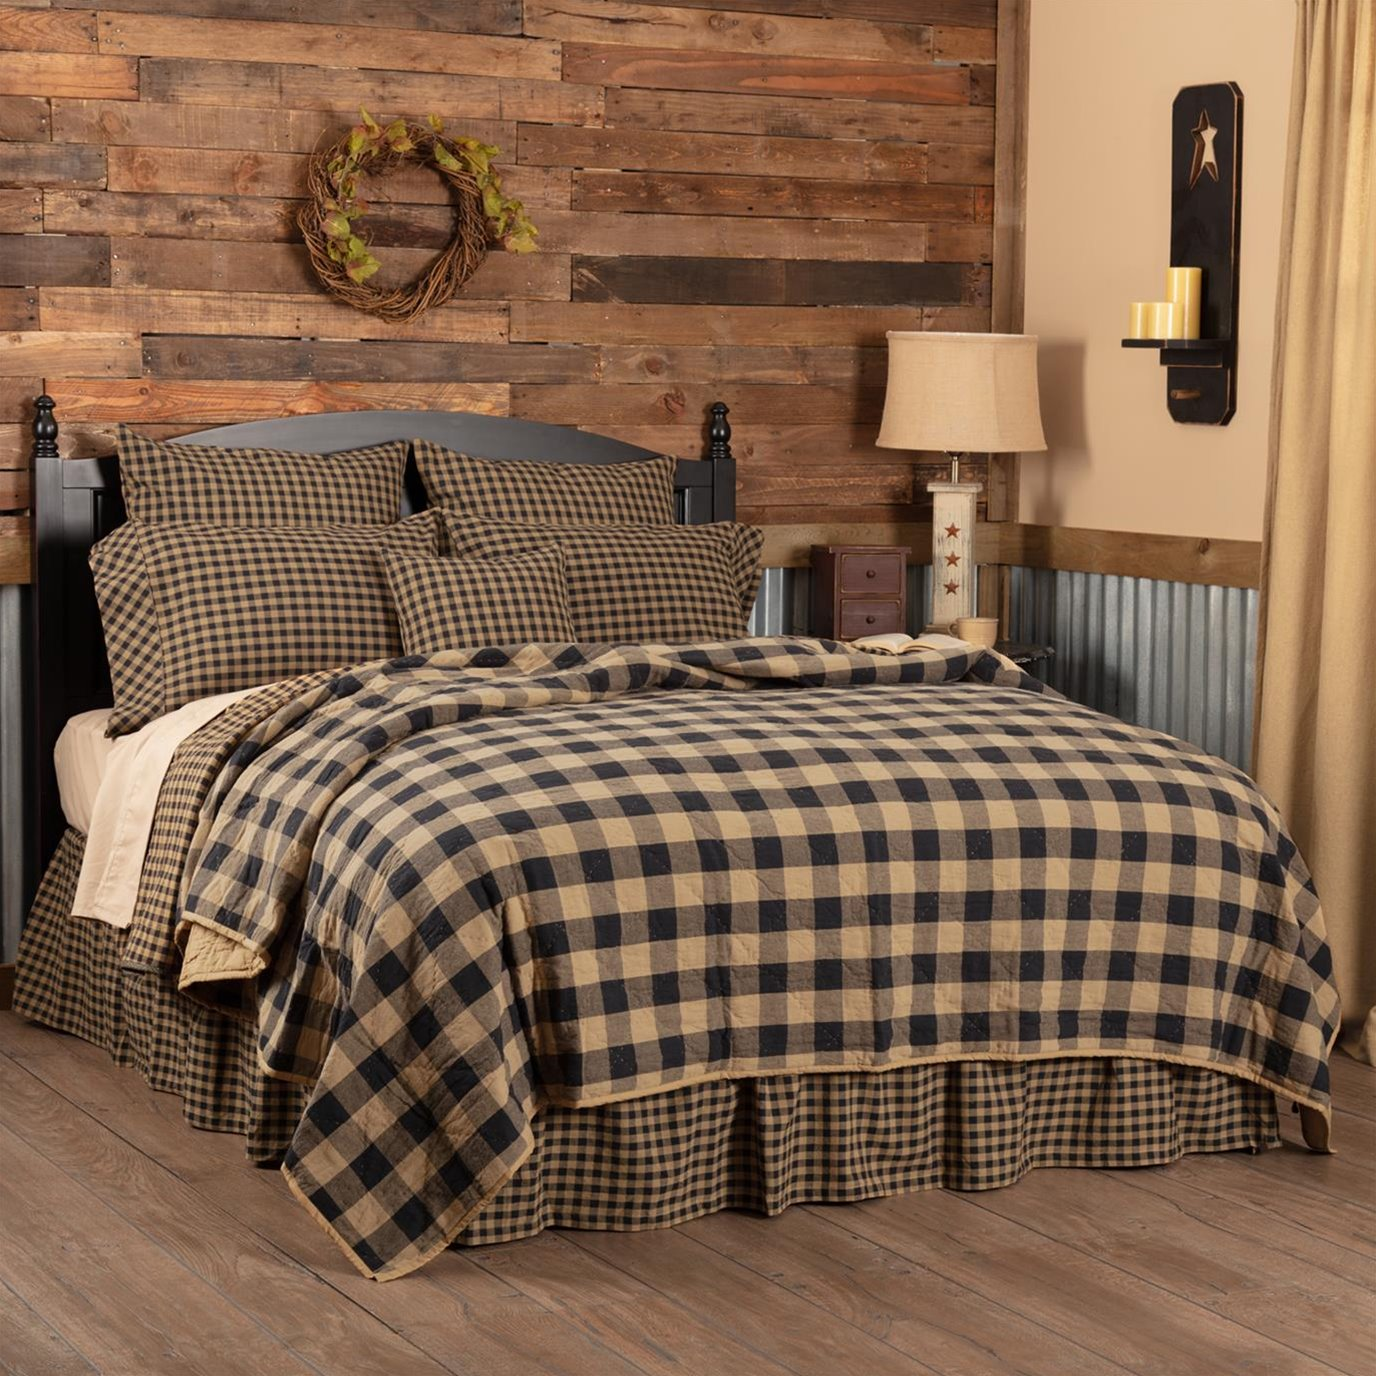 Black Check Luxury King Quilt Coverlet 120Wx105L